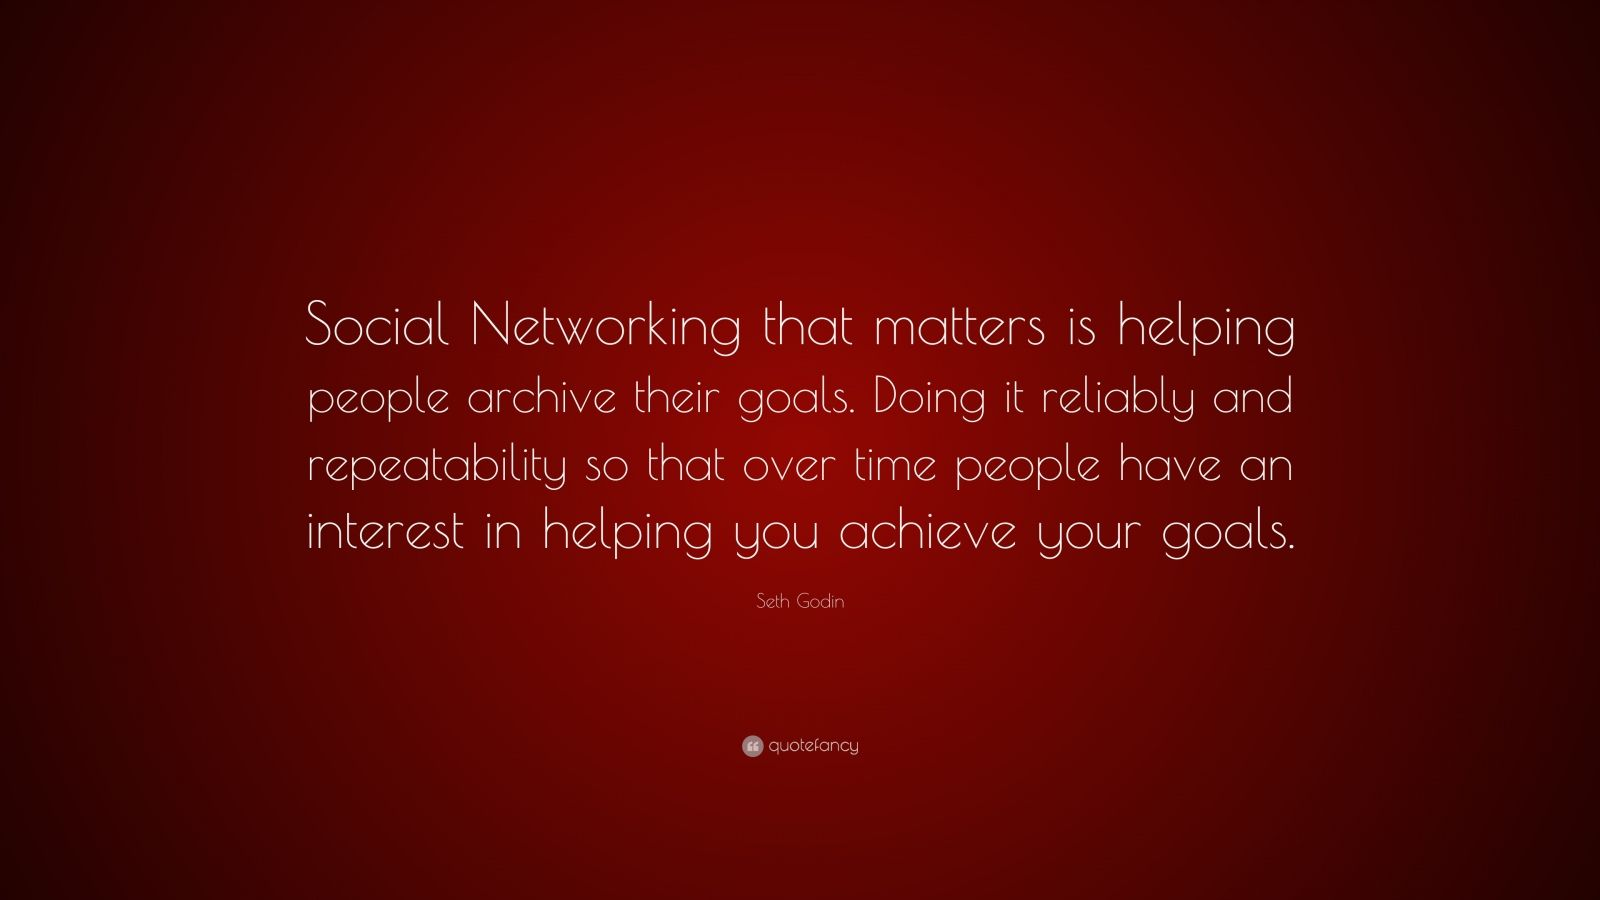 """Seth Godin Quote: """"Social Networking that matters is helping people archive their goals. Doing it reliably and repeatability so that over time people have an interest in helping you achieve your goals."""""""